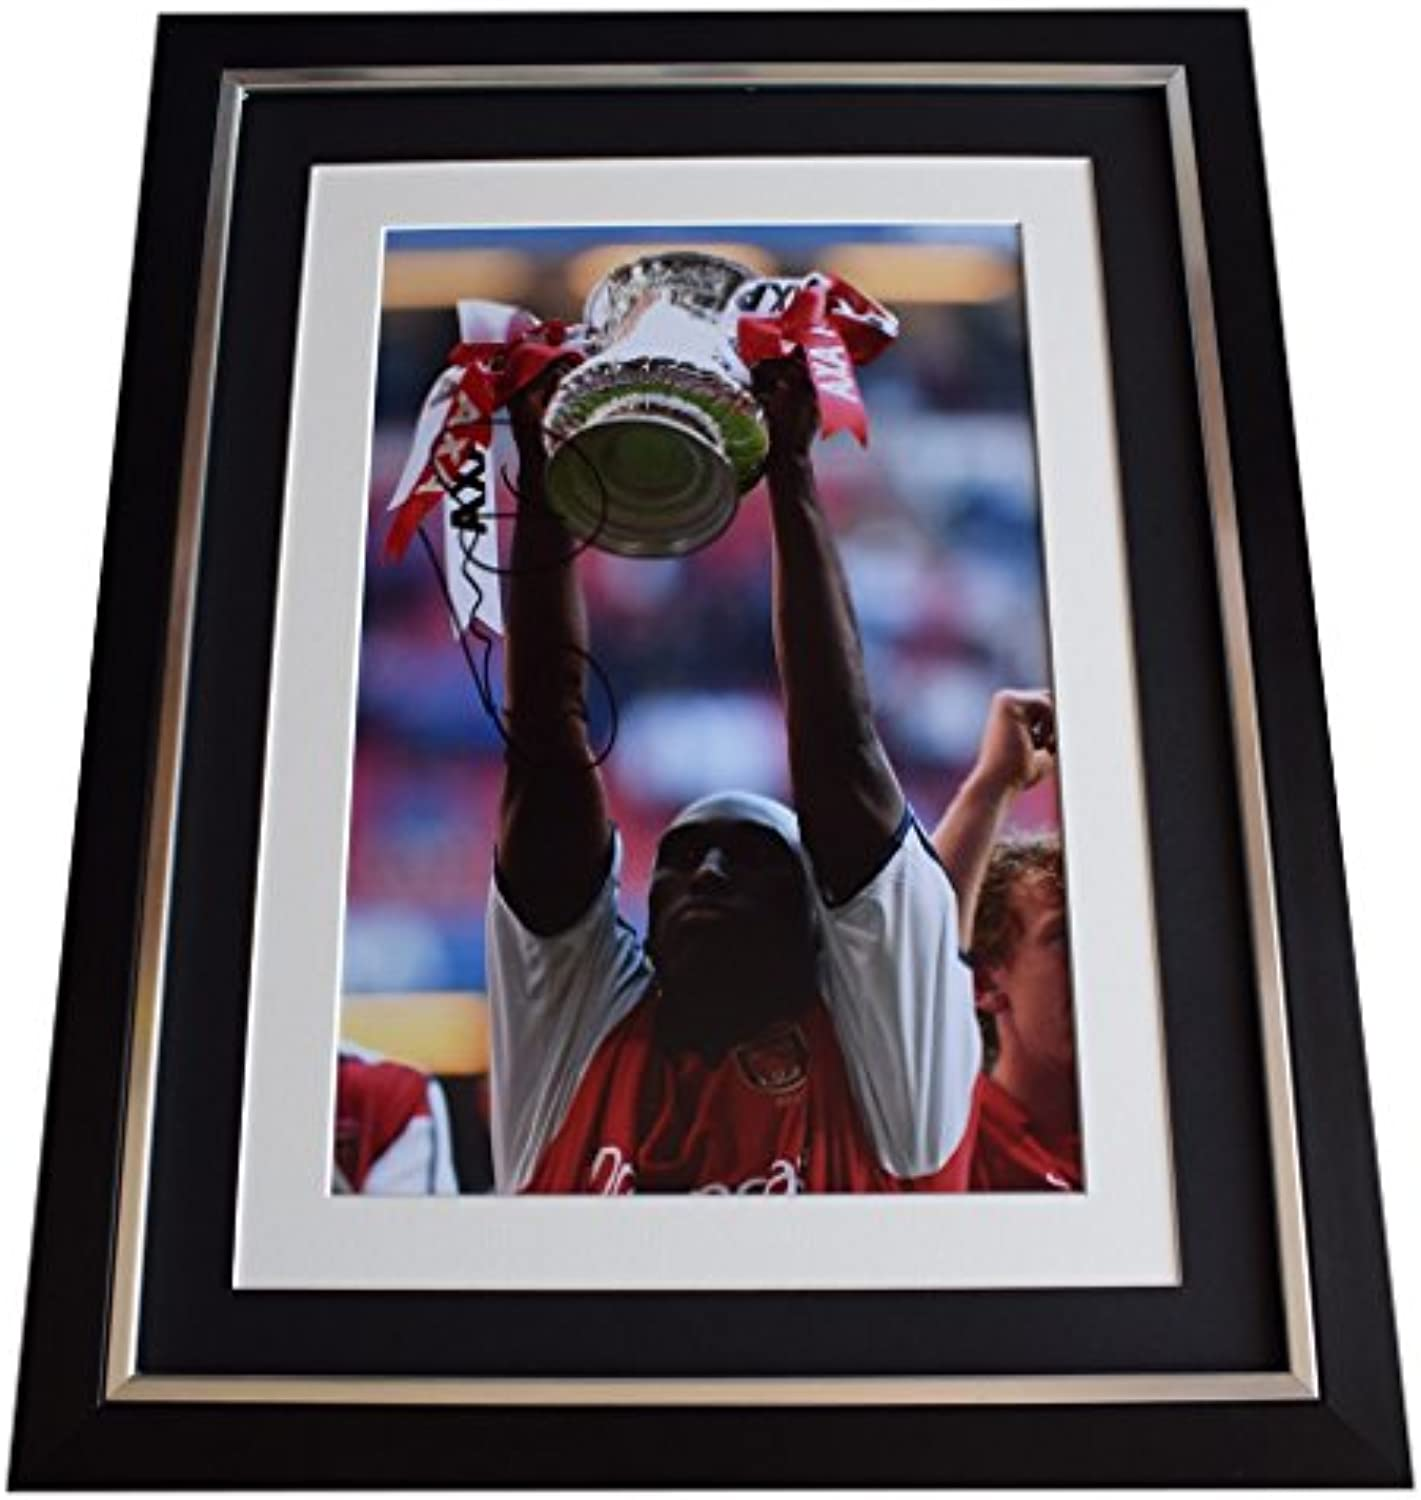 Sportagraphs Sol Campbell Signed Framed Photo Autograph 16x12 display Arsenal Football COA